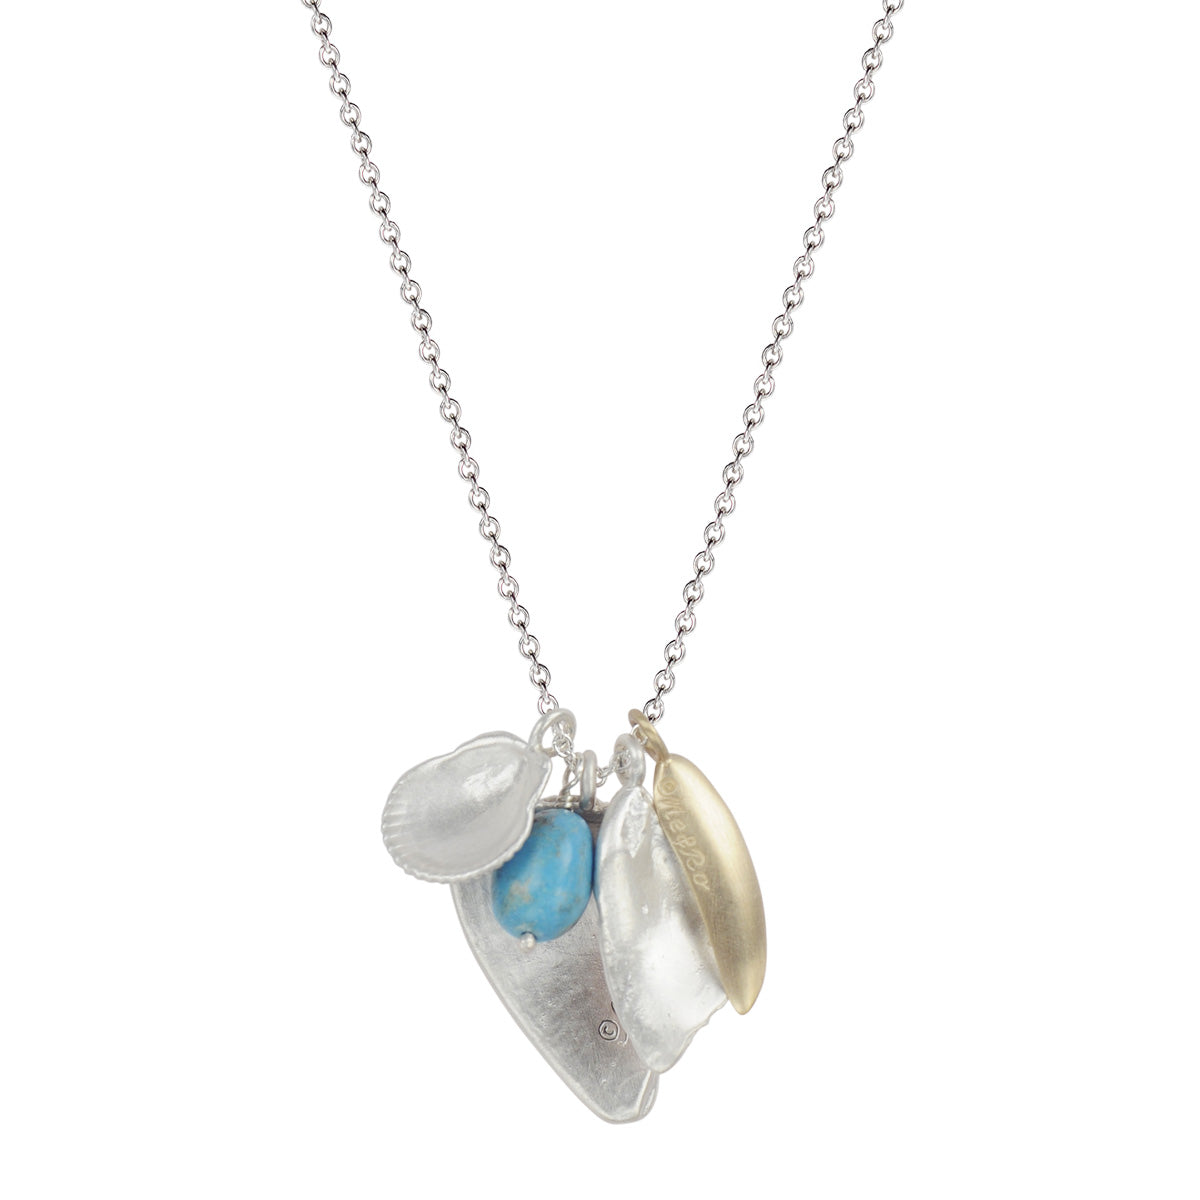 Silver Shell Charms, 10K Gold Leaf, and Turquoise Bead on Chain